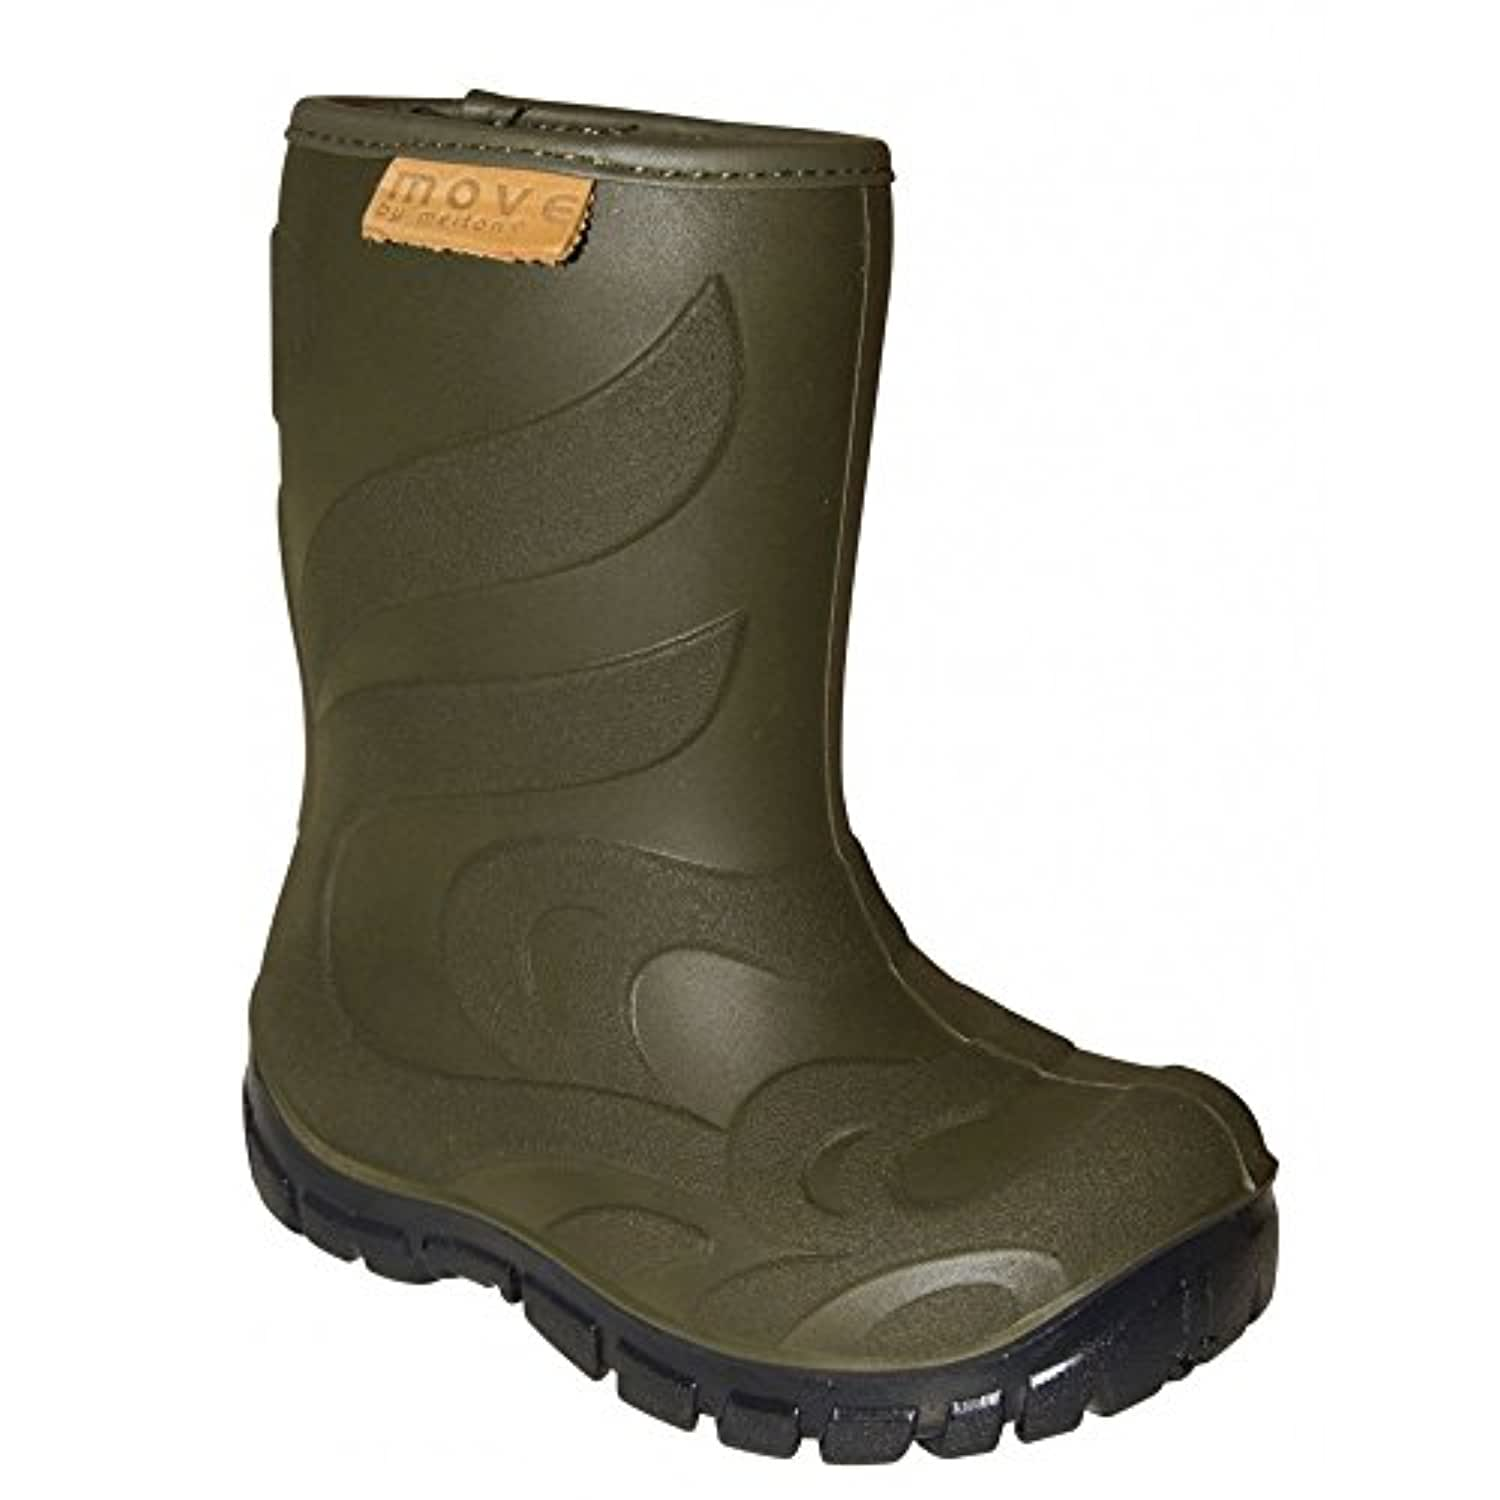 MOVE Move Thermo Boots Olive, Warm lined lightweight kids boot EU 24 /APPROX UK 7